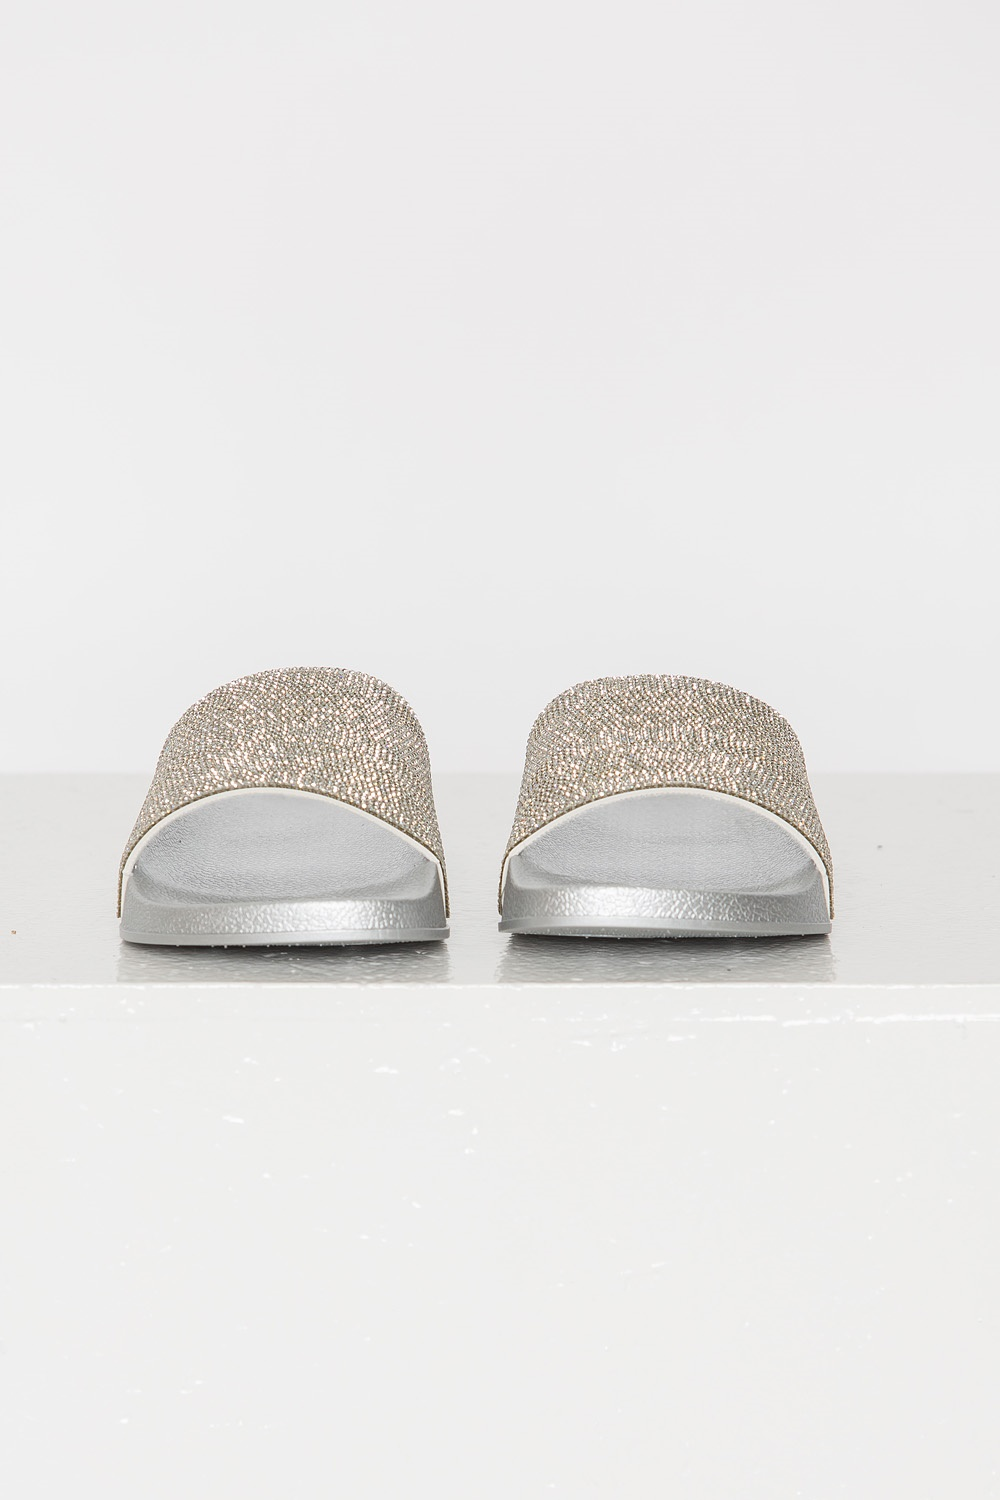 Crystal Slippers - White Silver